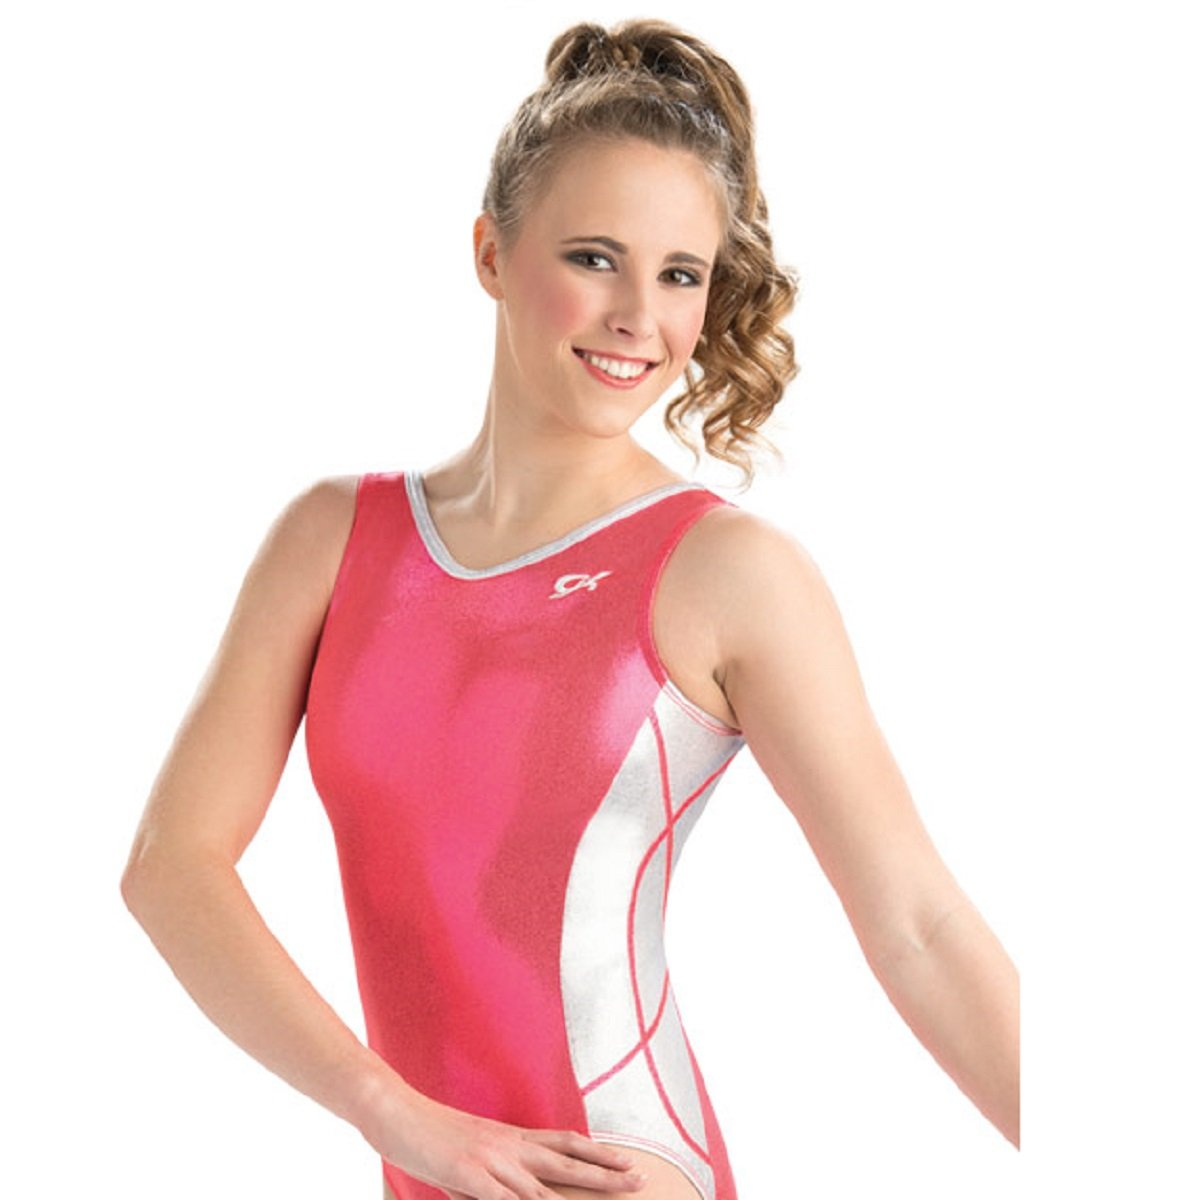 GK Elite Orangeade Shine Workout Leotard Child Medium CM by GK Elite